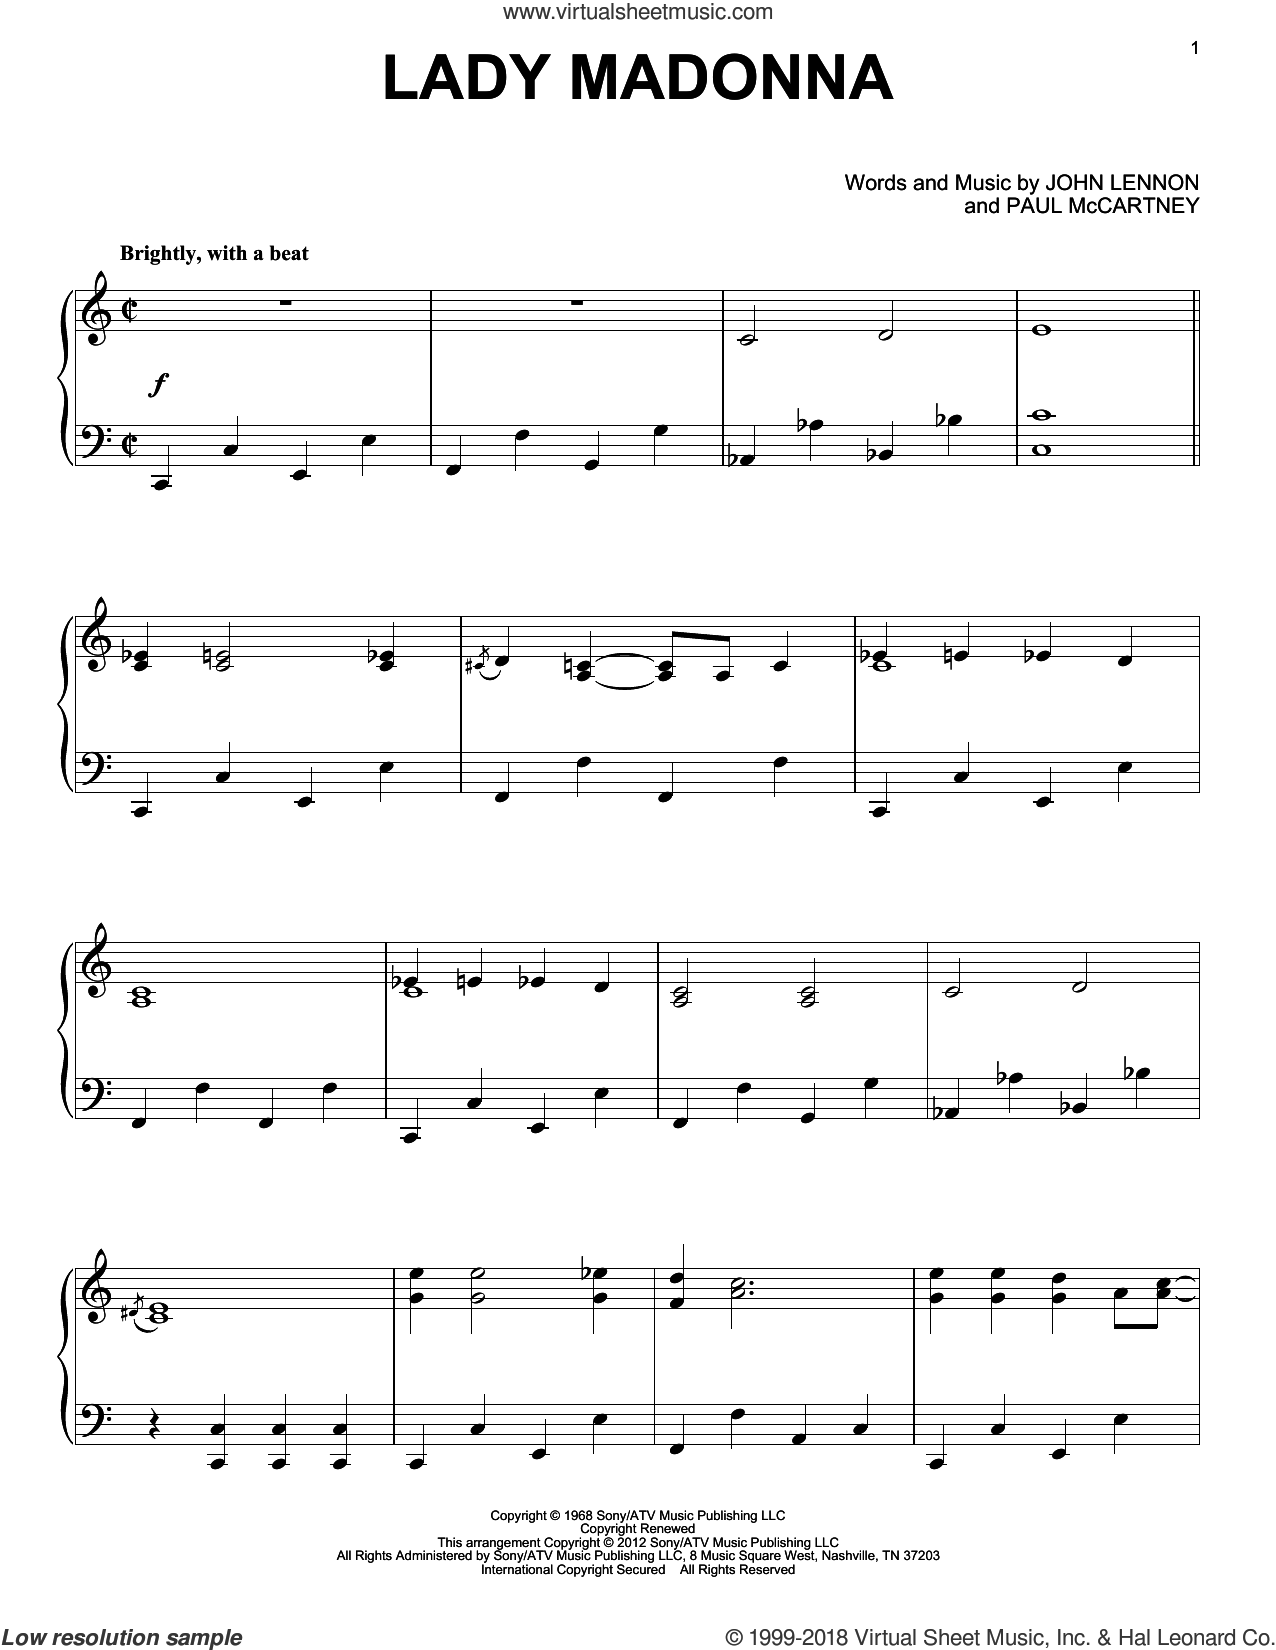 Lady Madonna sheet music for piano solo by The Beatles, John Lennon and Paul McCartney. Score Image Preview.